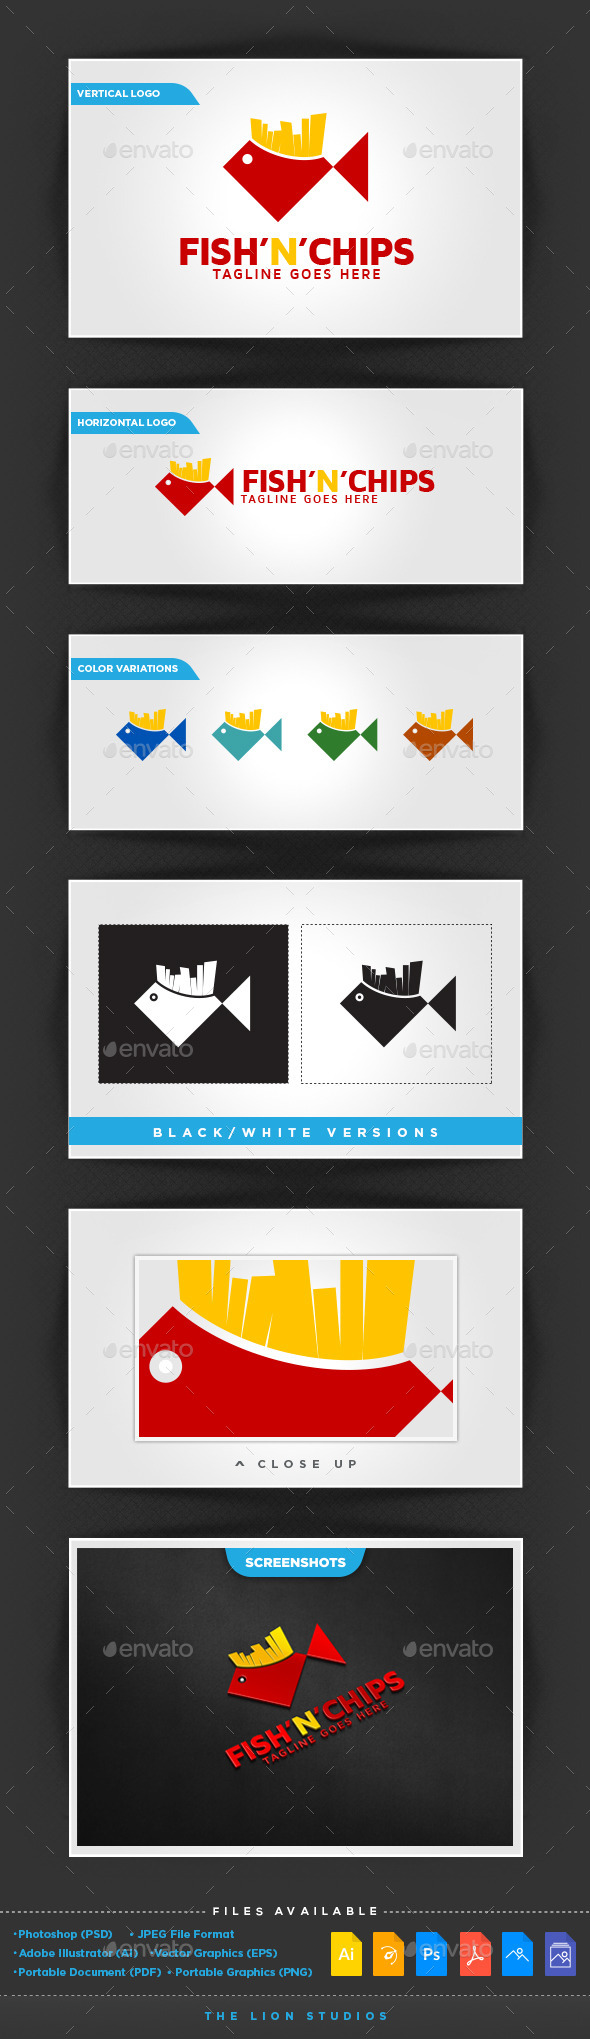 GraphicRiver Fish n Chips Logo Template 11270999